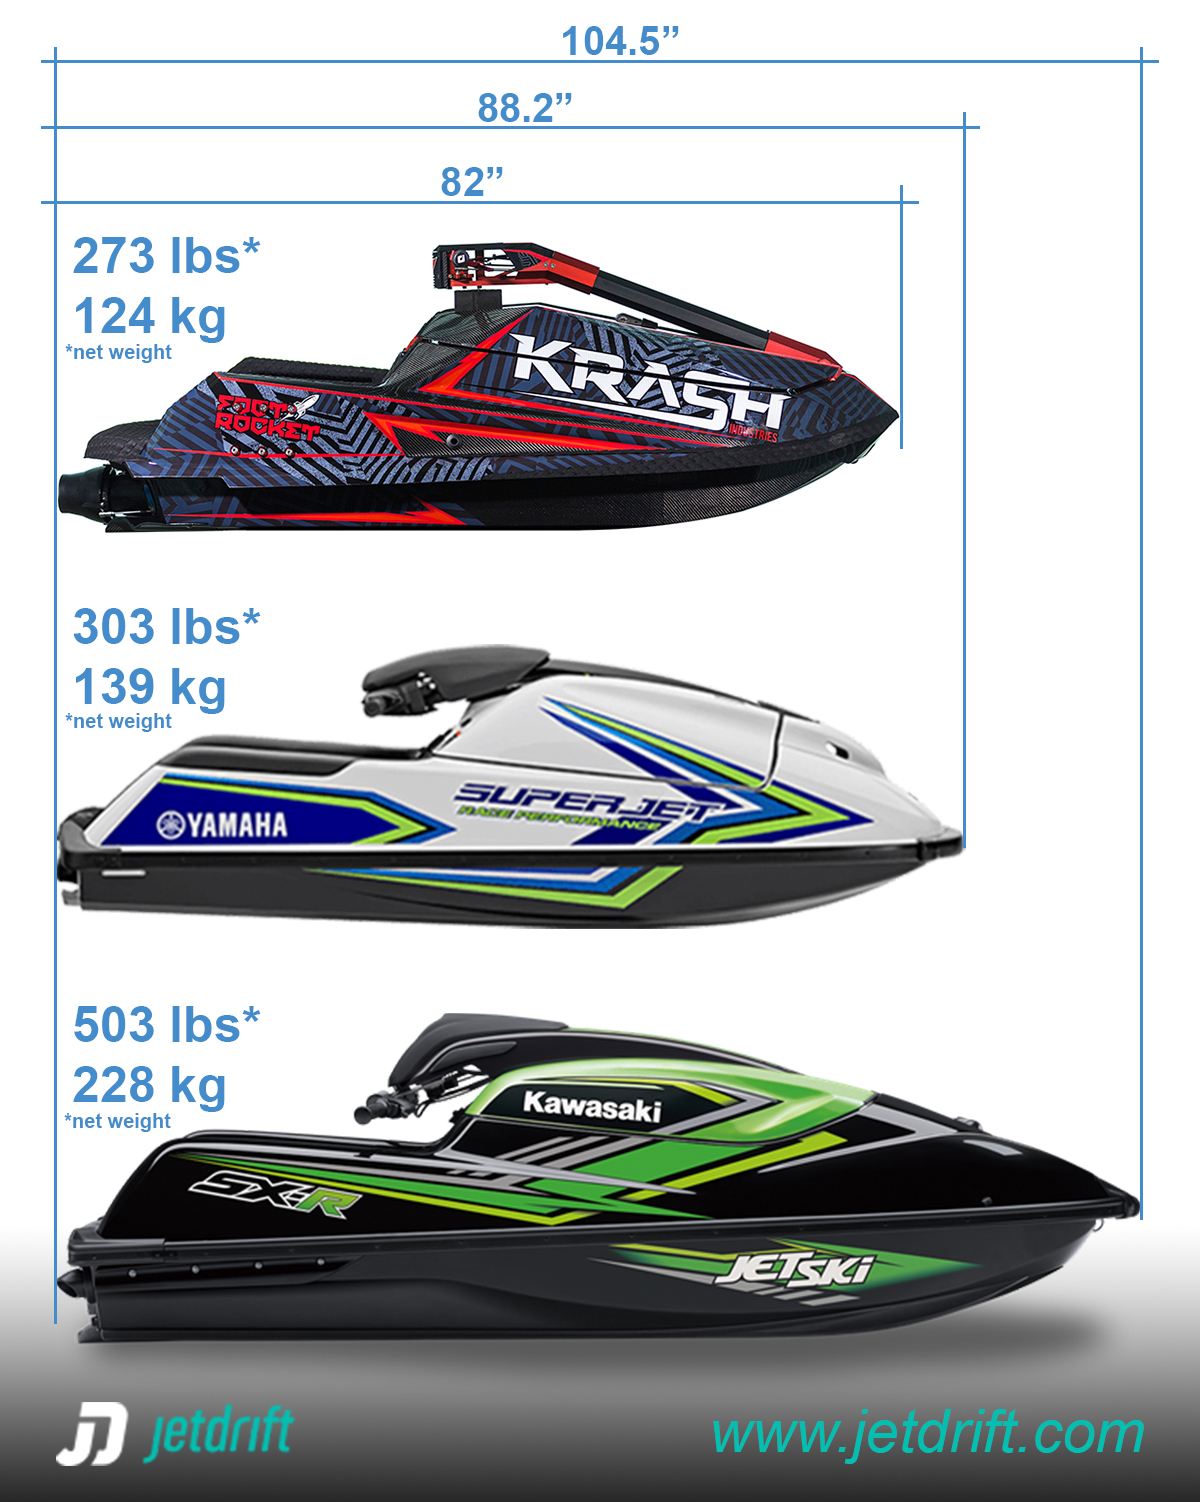 Kawasaki SX-R 1500 vs. Yamaha SuperJet vs. Krash Comparison